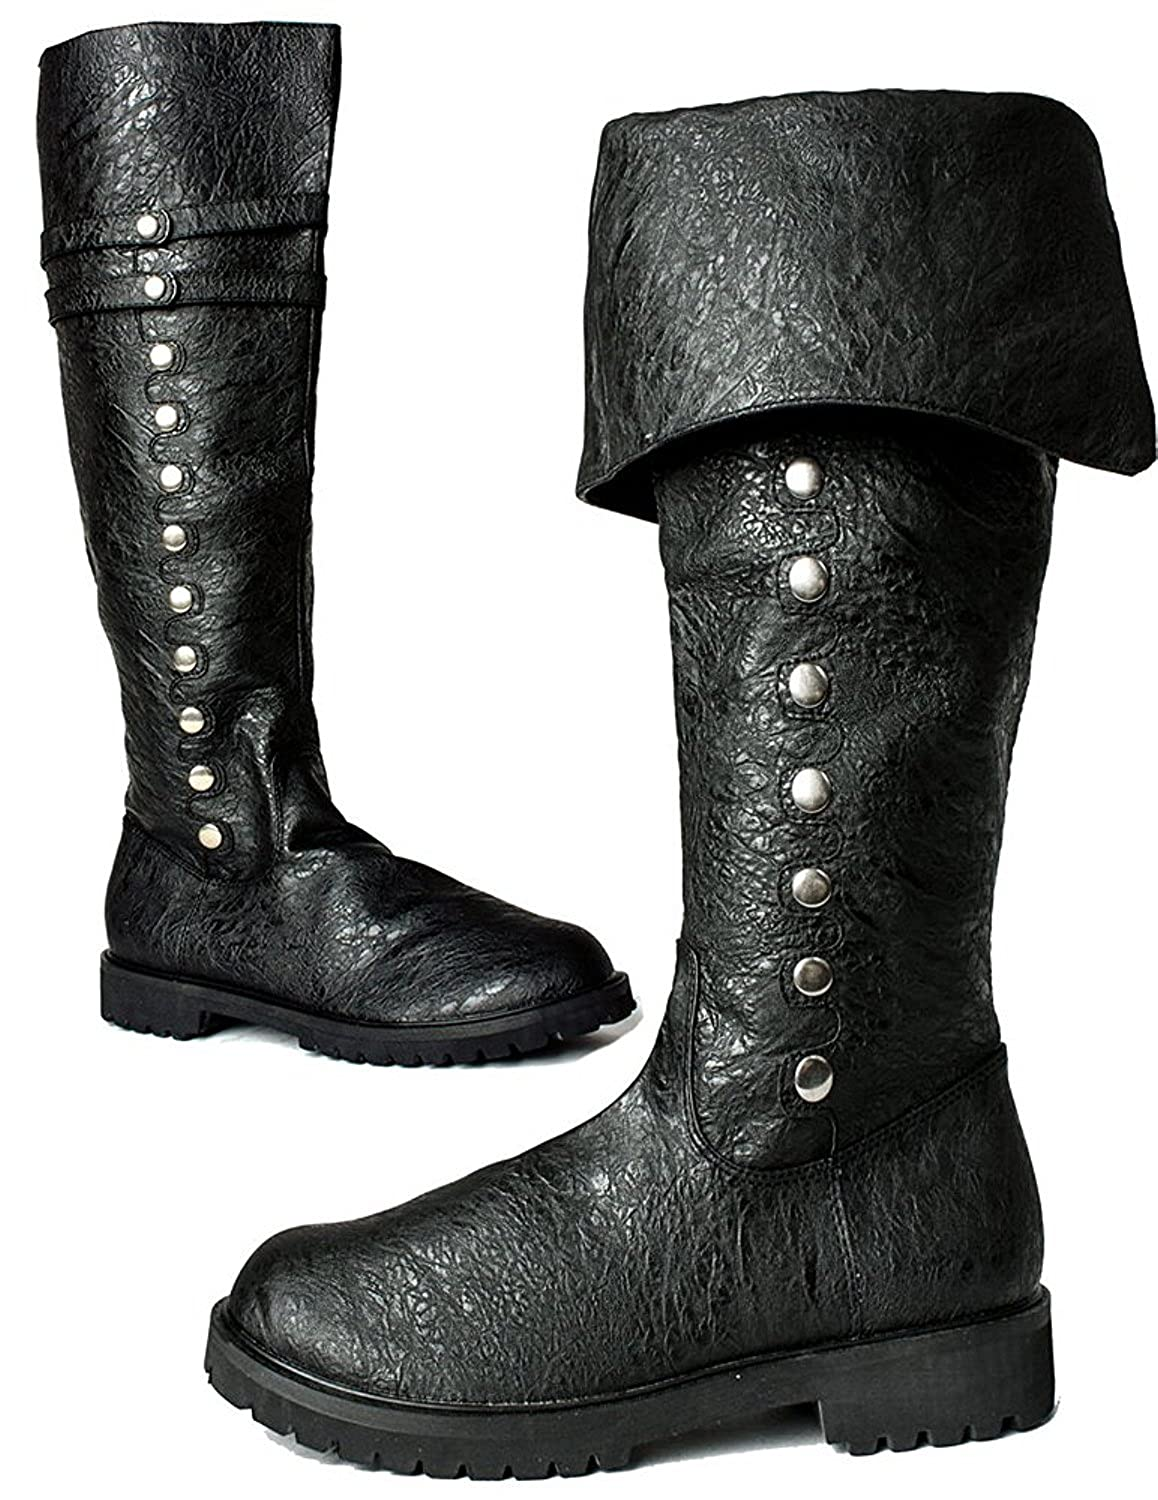 Deluxe Adult Costumes - Men's Assassin's Creed black military silver-tone stud fold over the knee boots.